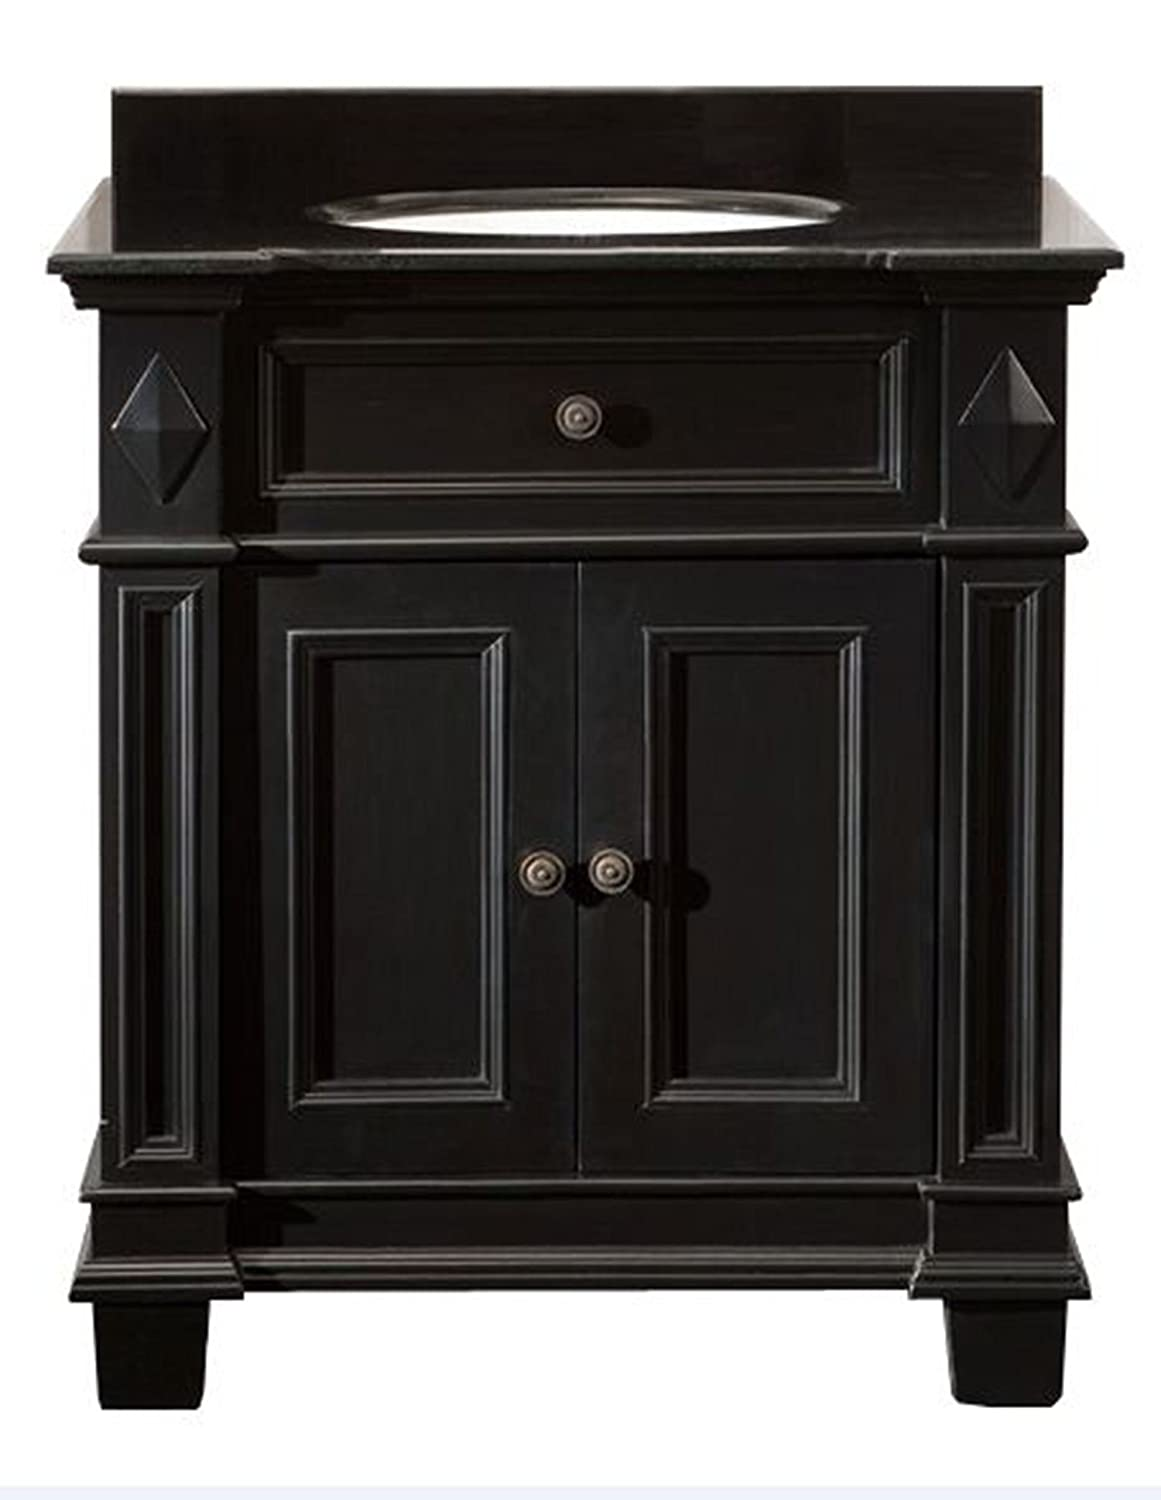 Ove Decors Essex VB Vanity with Black Marble Countertop with Ceramic Basin,  31-Inch Wide, Espresso - - Amazon.com - Ove Decors Essex VB Vanity With Black Marble Countertop With Ceramic